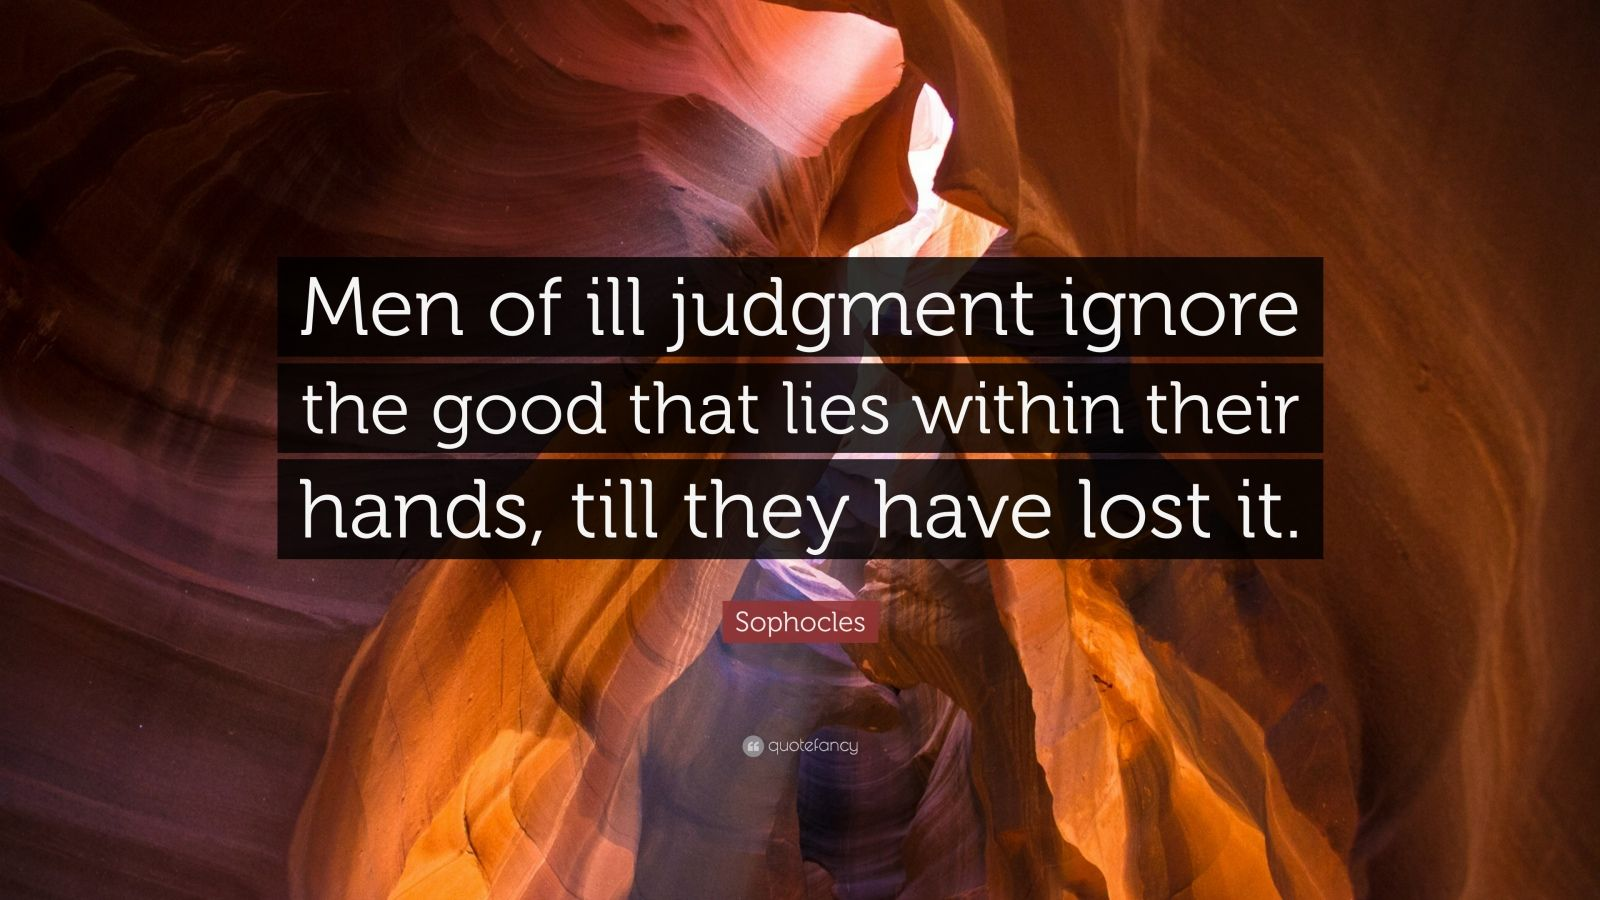 """Sophocles Quote: """"Men of ill judgment ignore the good that lies within their hands, till they have lost it."""""""